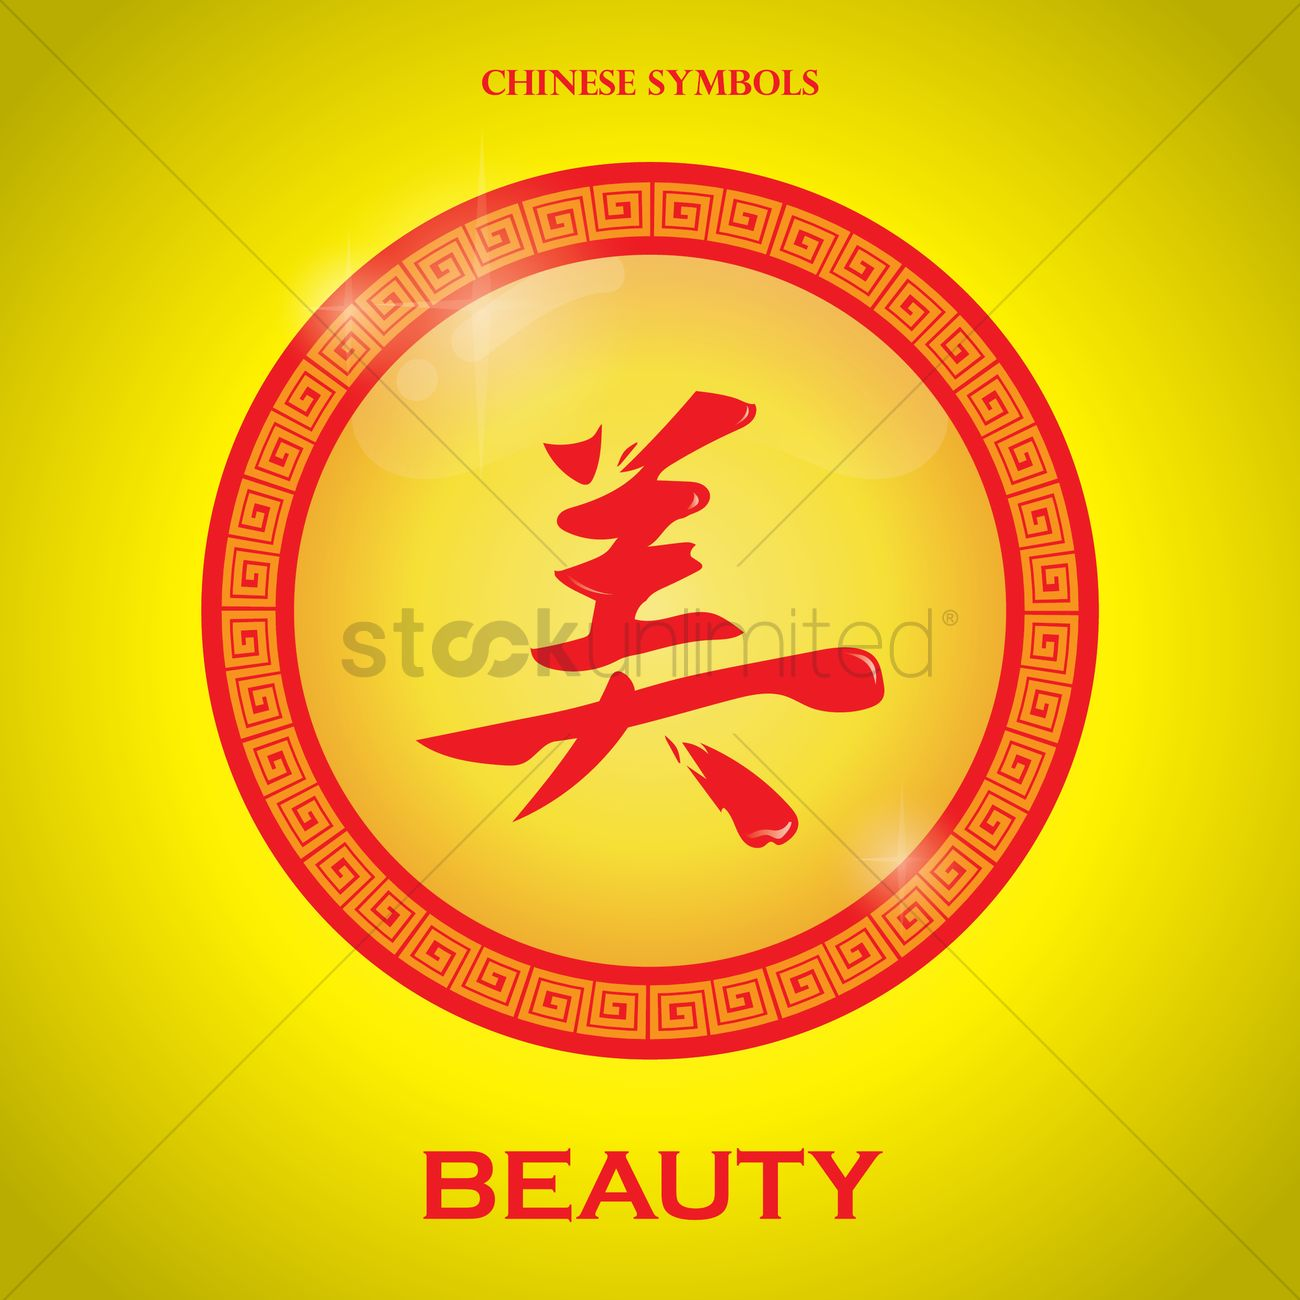 Chinese Calligraphy Beauty Vector Image 1580929 Stockunlimited